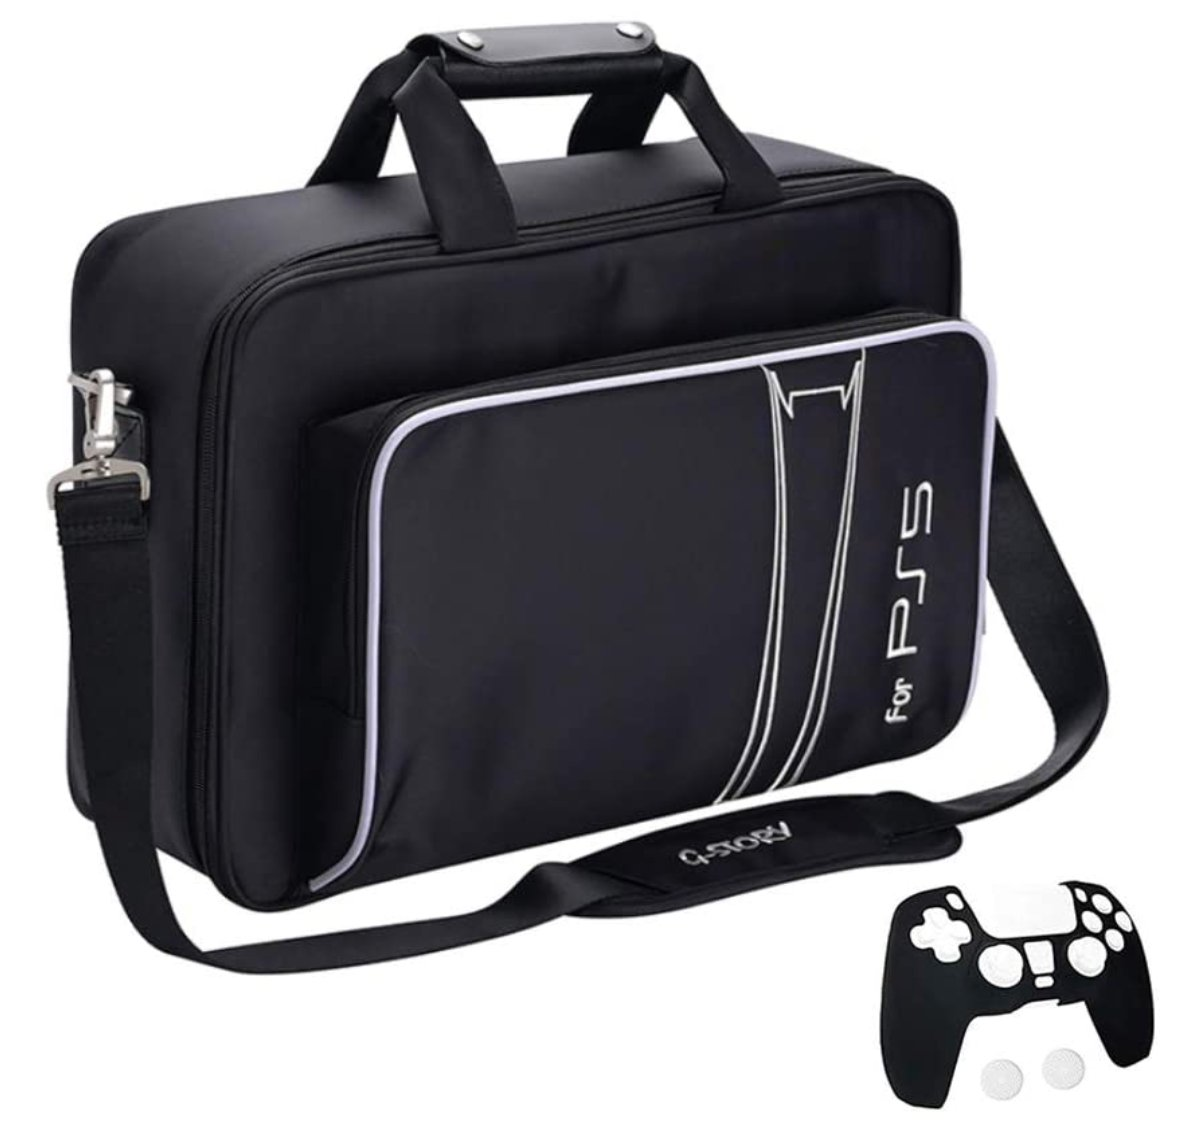 G-Story Black PS5 Console Storage Bag PS5 Travel Bag  Was $62.99 Now $49.99 Amazon